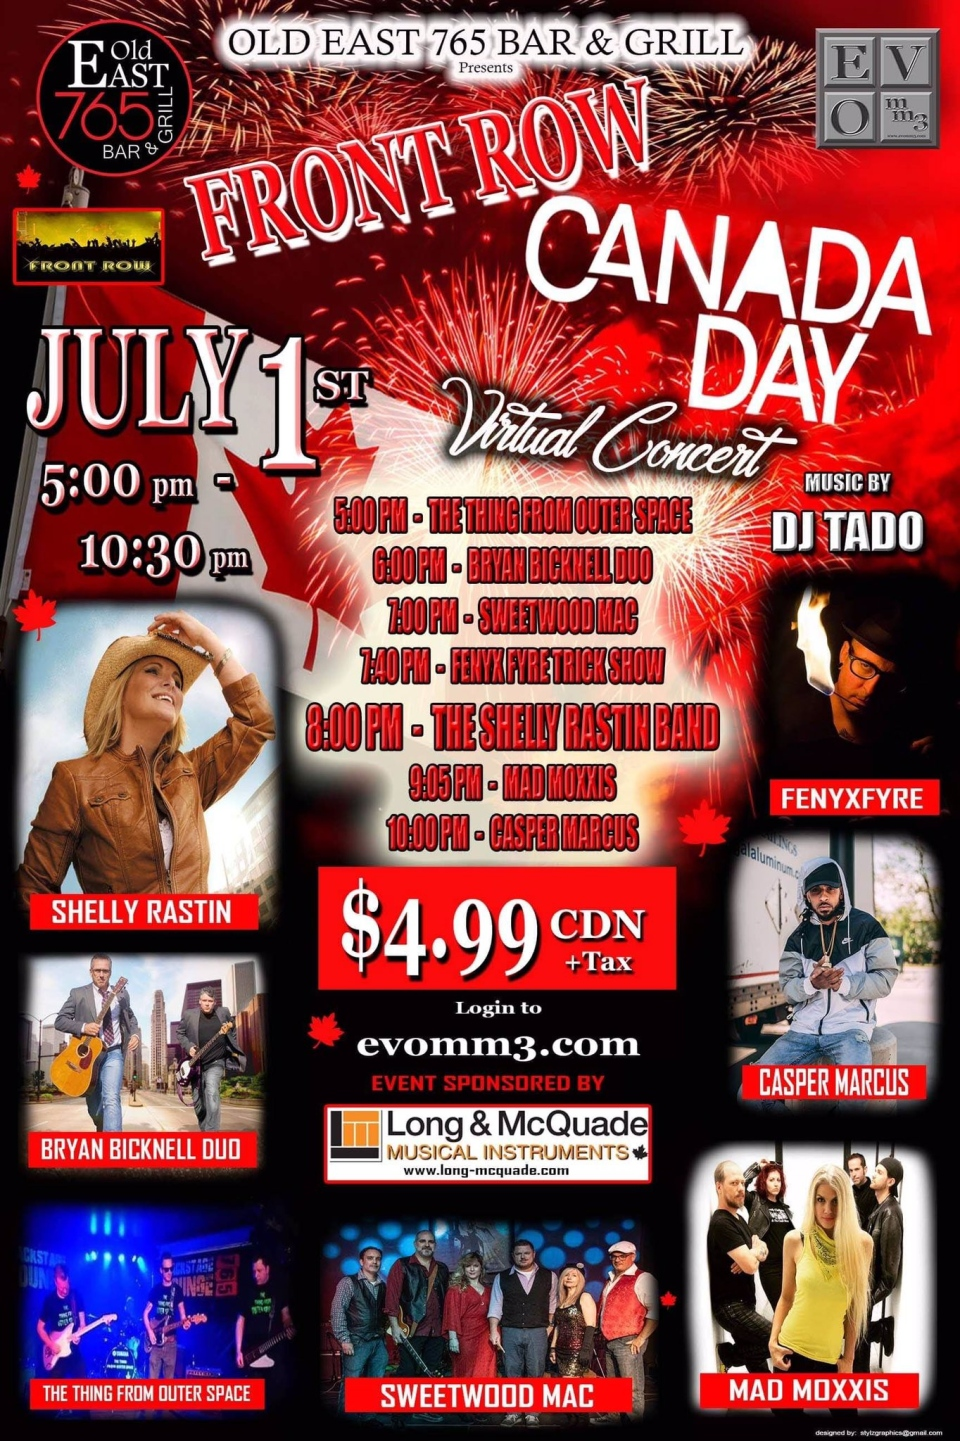 Old East 765 Bar and Grill on Dundas Street in London Ont. will host a virtual Canada Day concert with proceeds going to the artists.